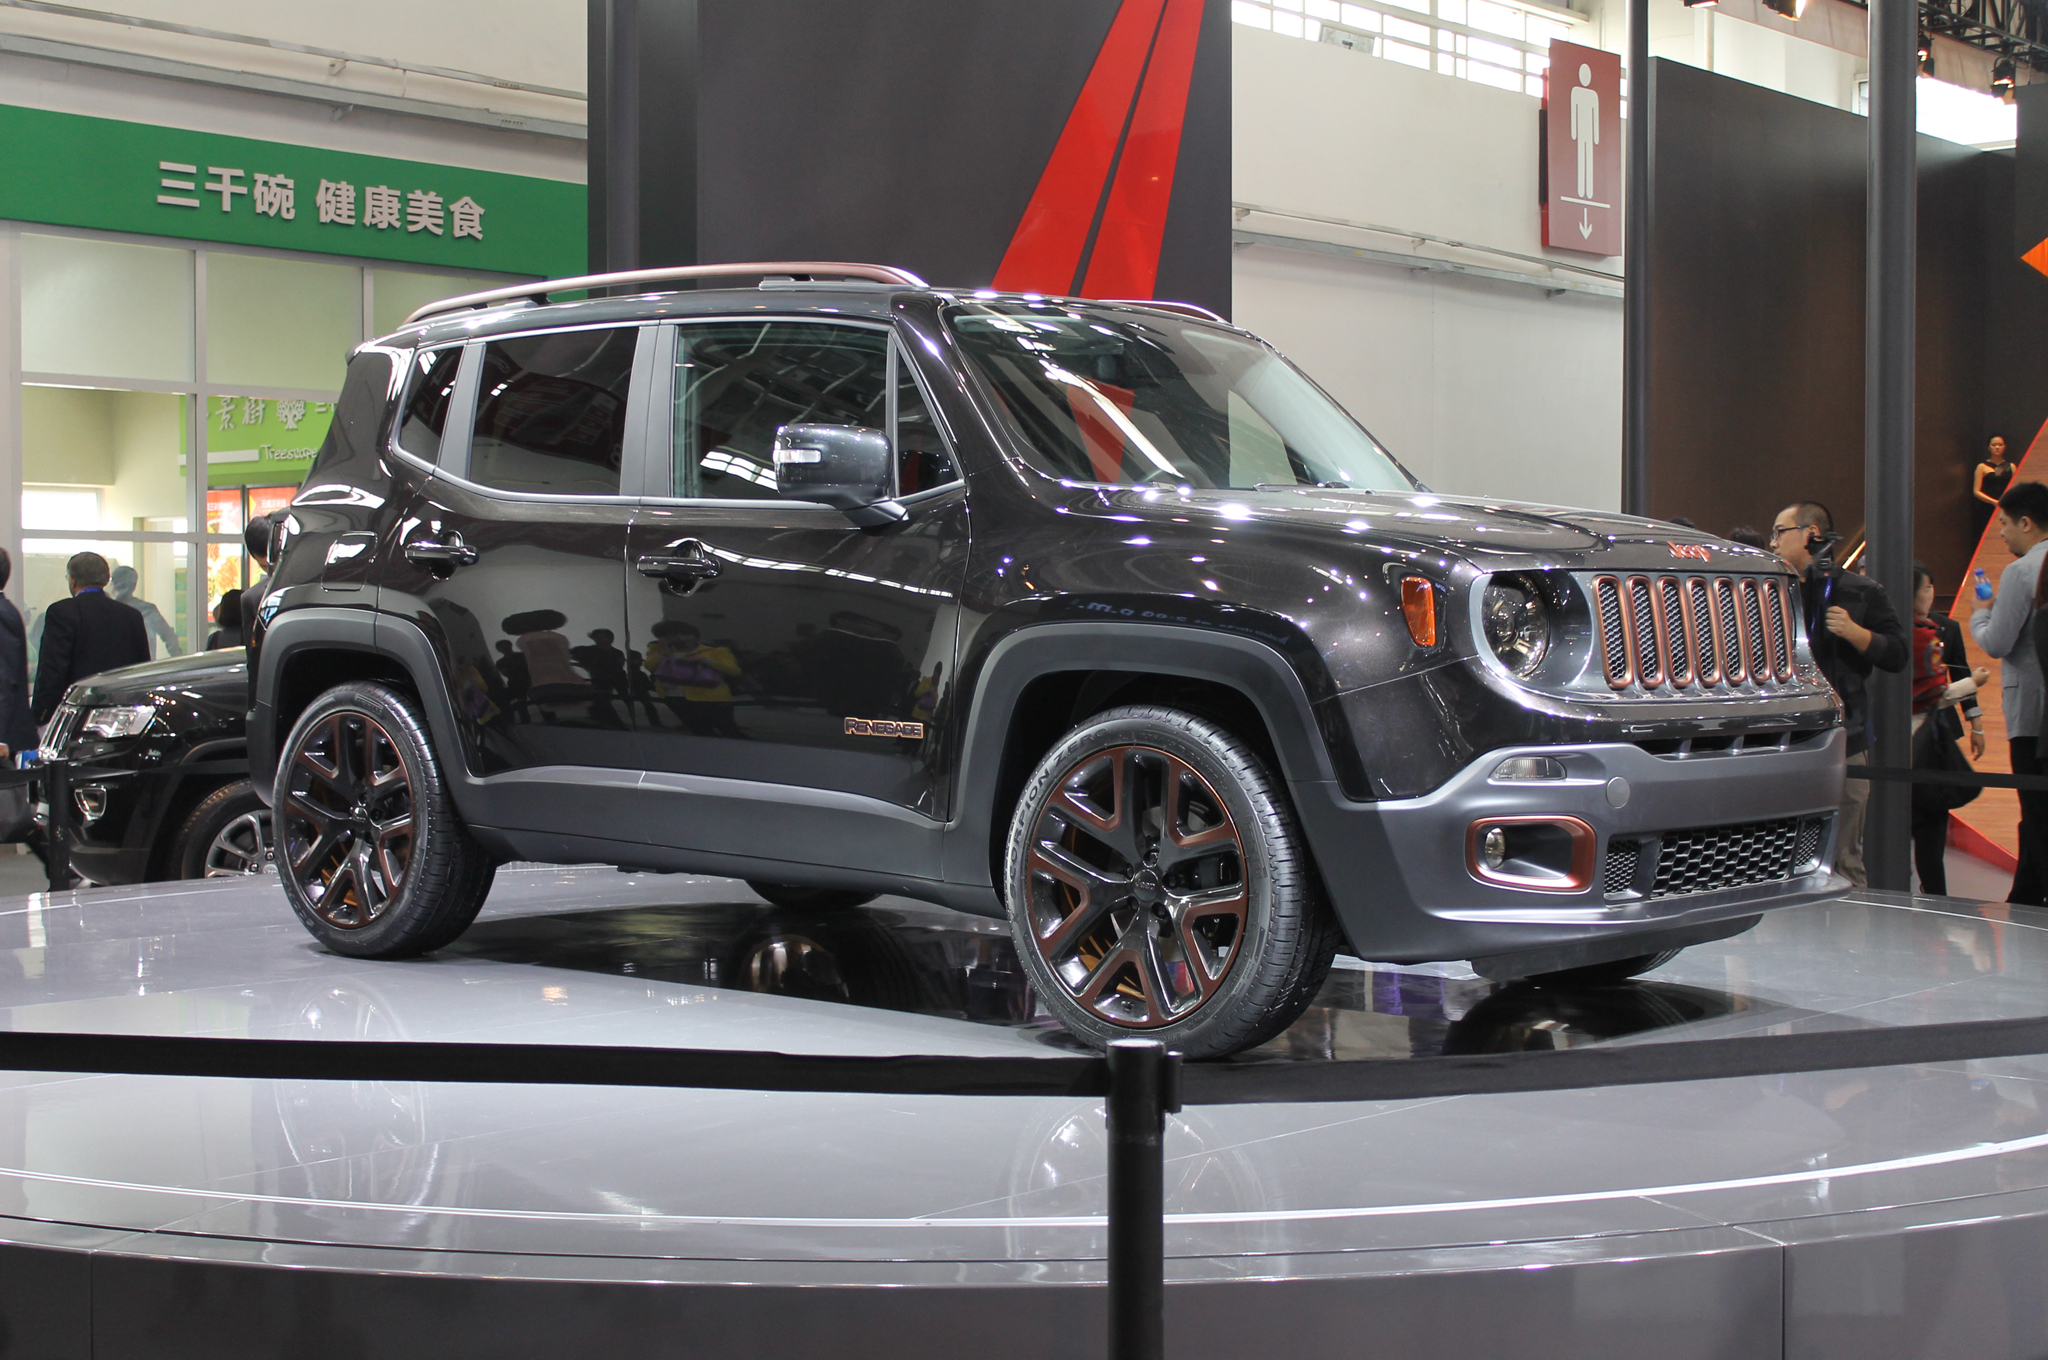 Chinese-Inspired Jeep Design Concepts Bow in Beijing